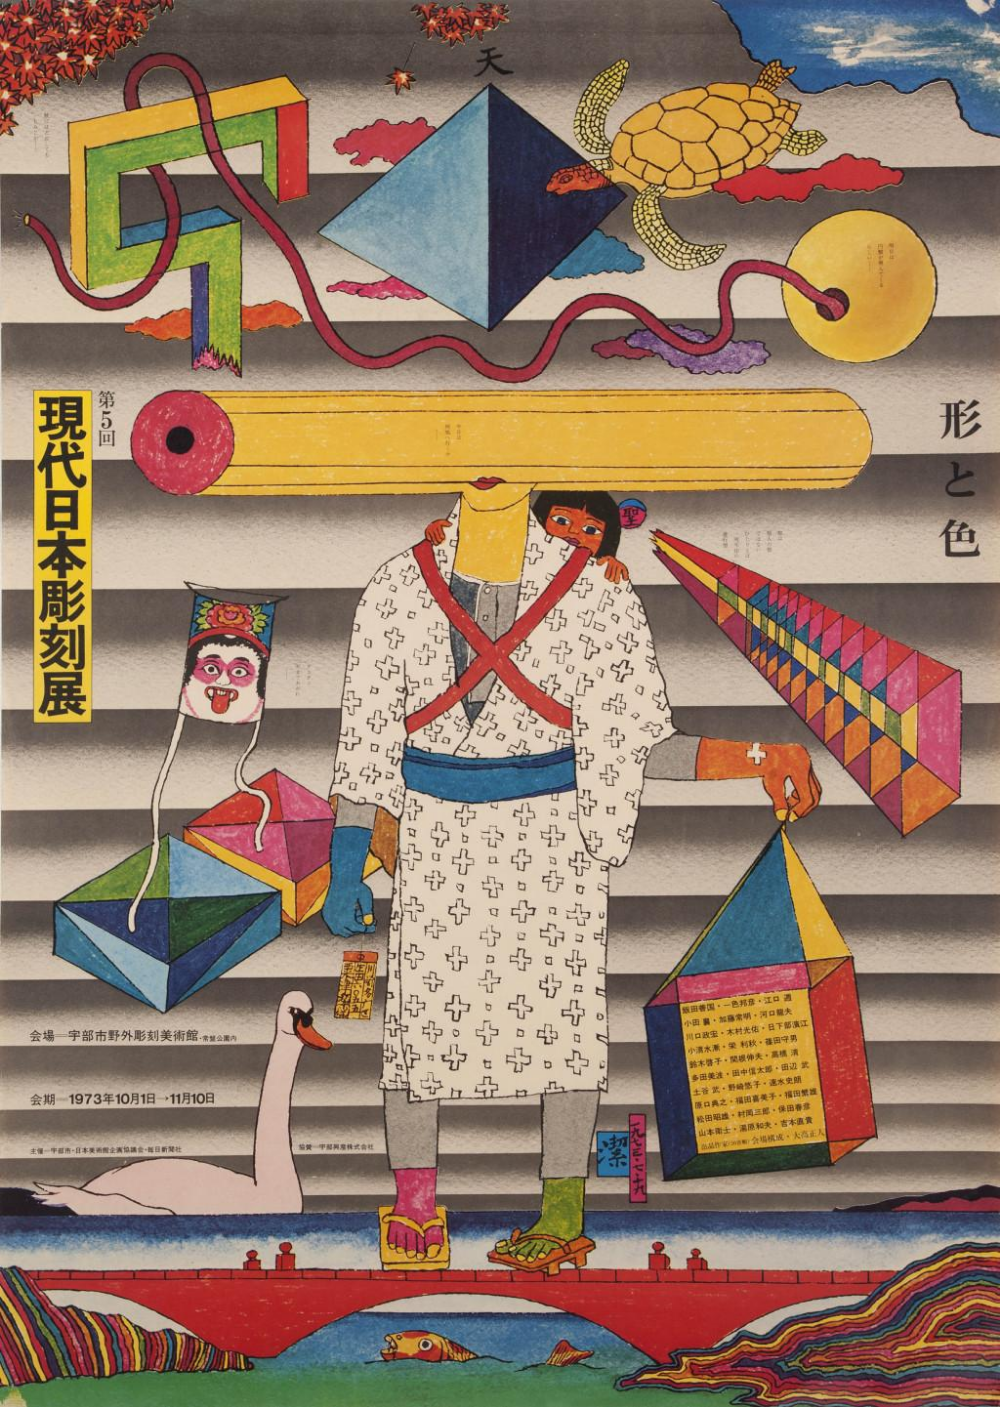 Enter graphic design heaven with these vintage Japanese posters  Digital Arts